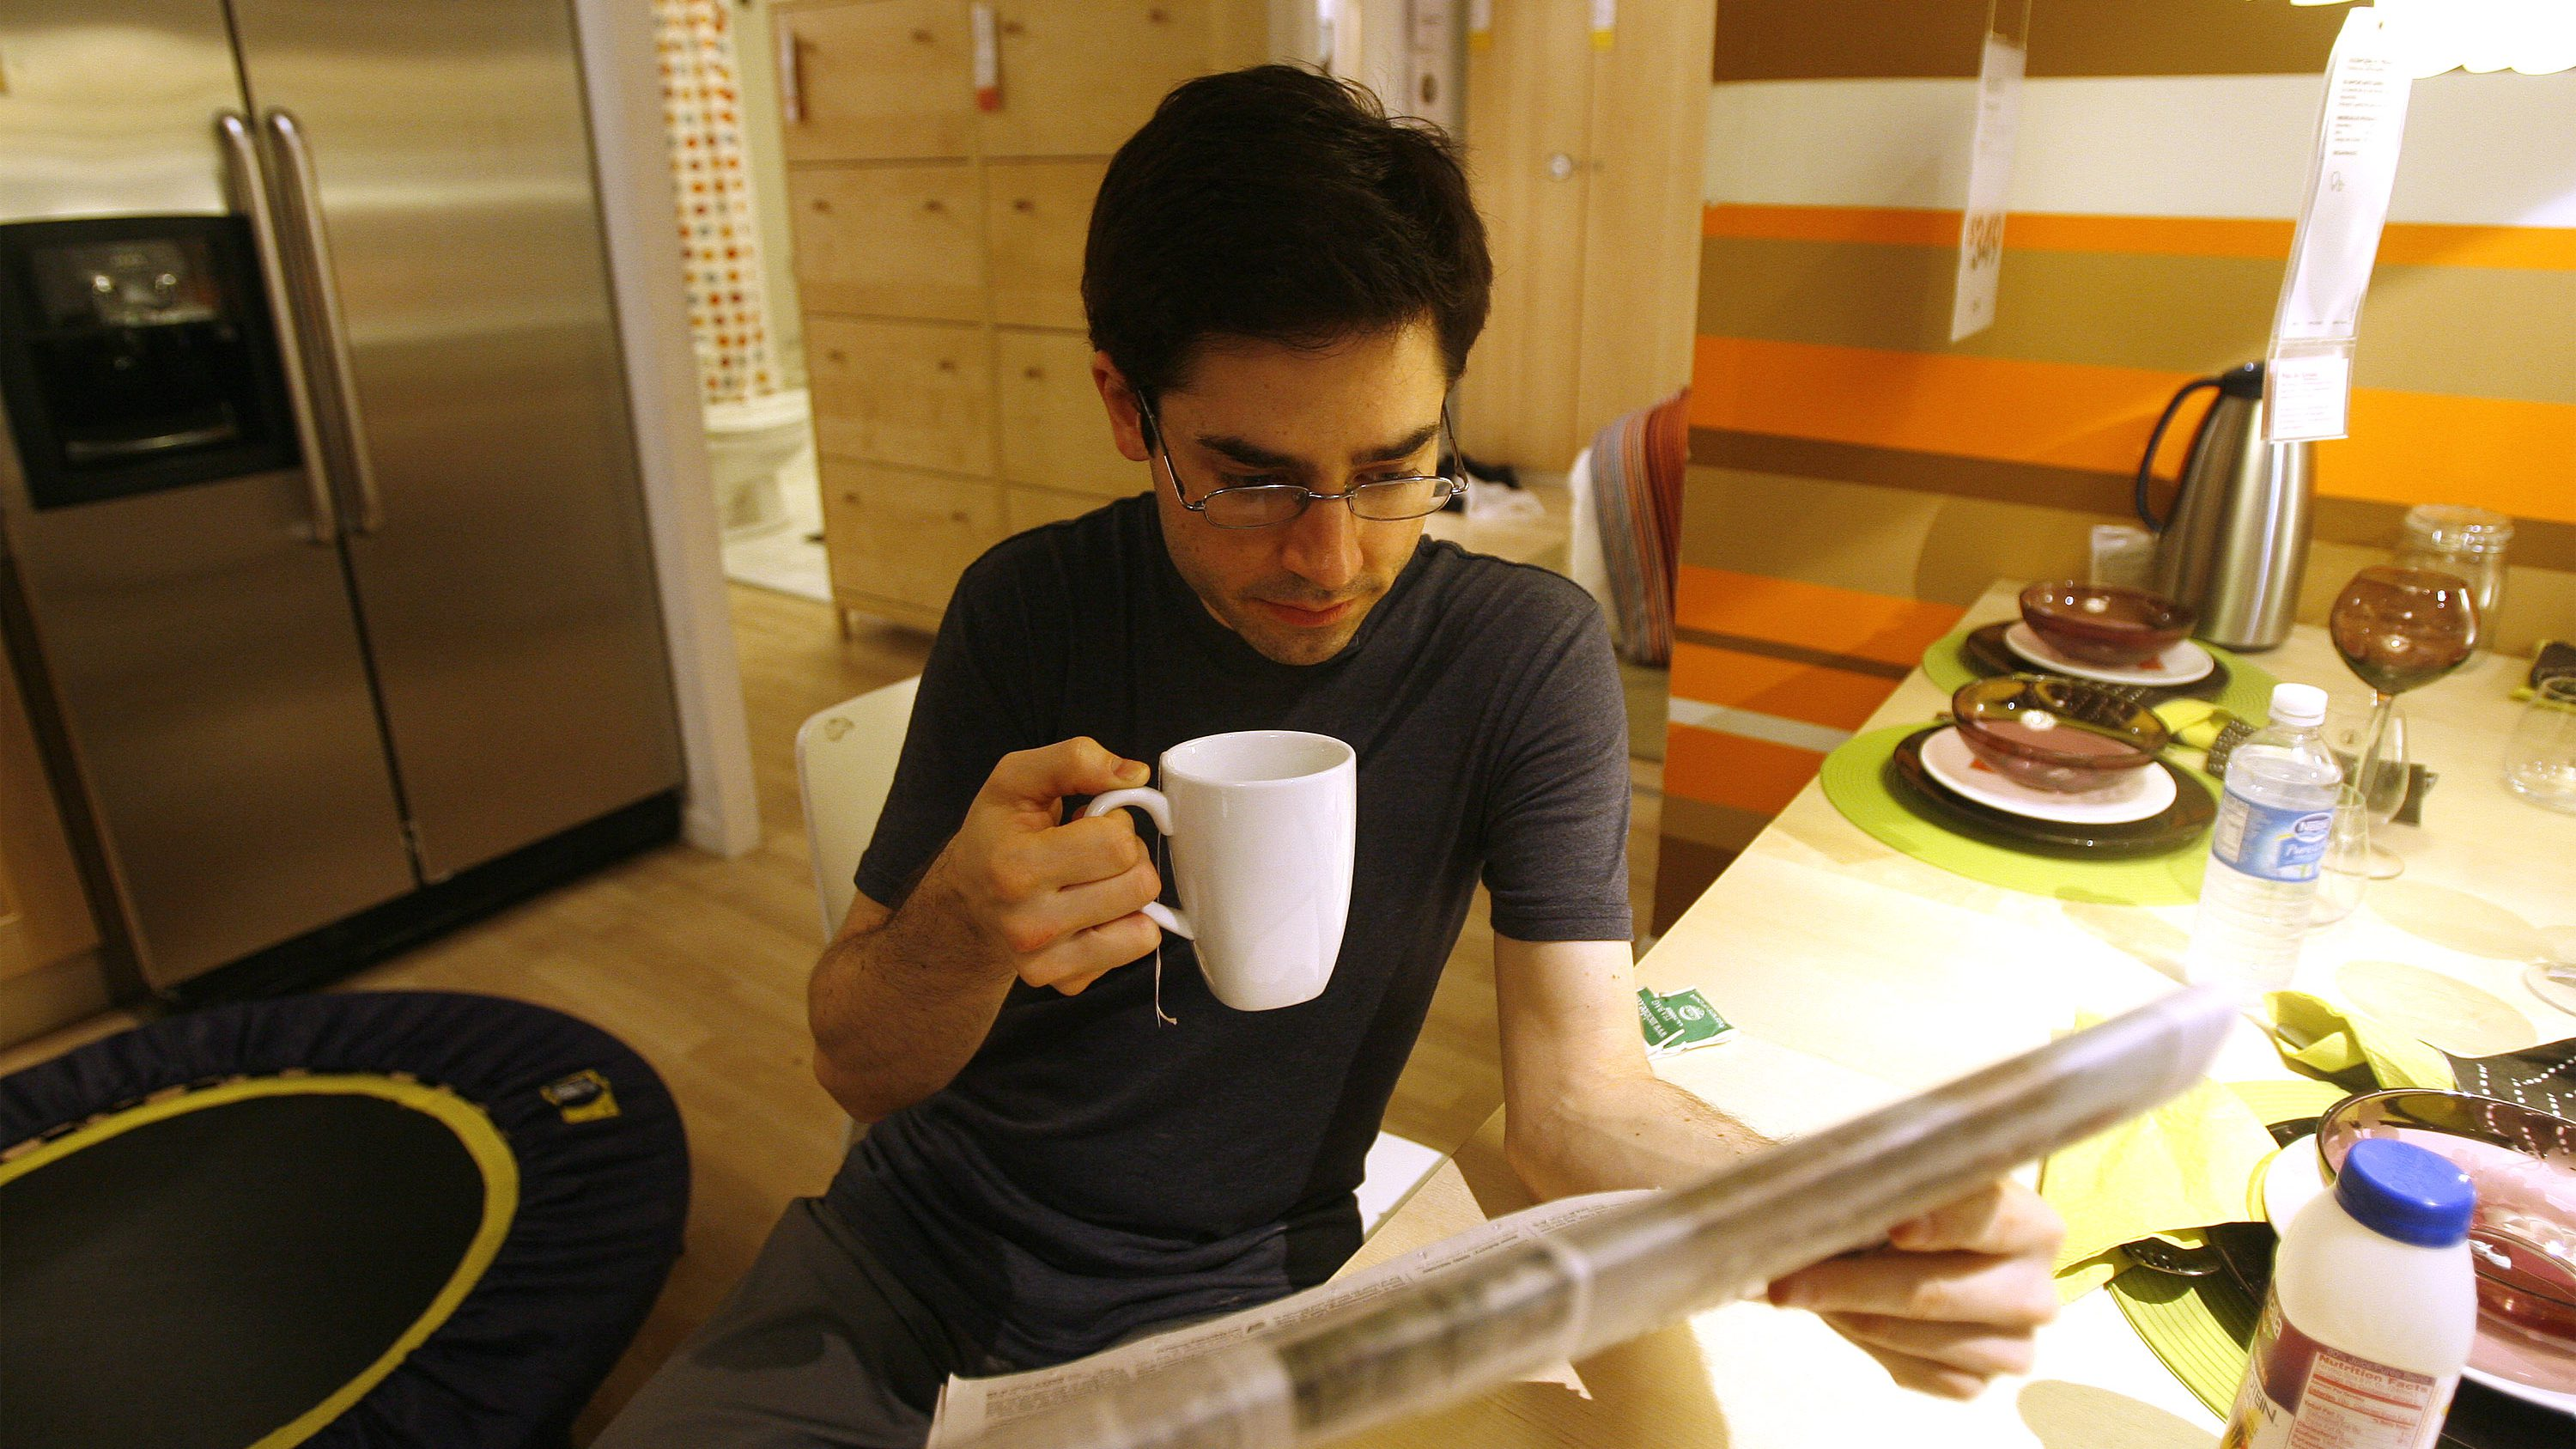 "Mark Malkoff, 31, drinks tea and reads a newspaper inside an IKEA store in Paramus, New Jersey January 8, 2008. When furniture retailer IKEA promoted its latest U.S. sale by asking customers on its Web site if they are ""ready to take advantage of us,"" one customer took them up on the offer in a novel way. Malkoff moved into the IKEA store in Elizabeth, New Jersey, for a week while his New York City apartment is fumigated because his friends' apartments were too small to accommodate him and hotels were too expensive."